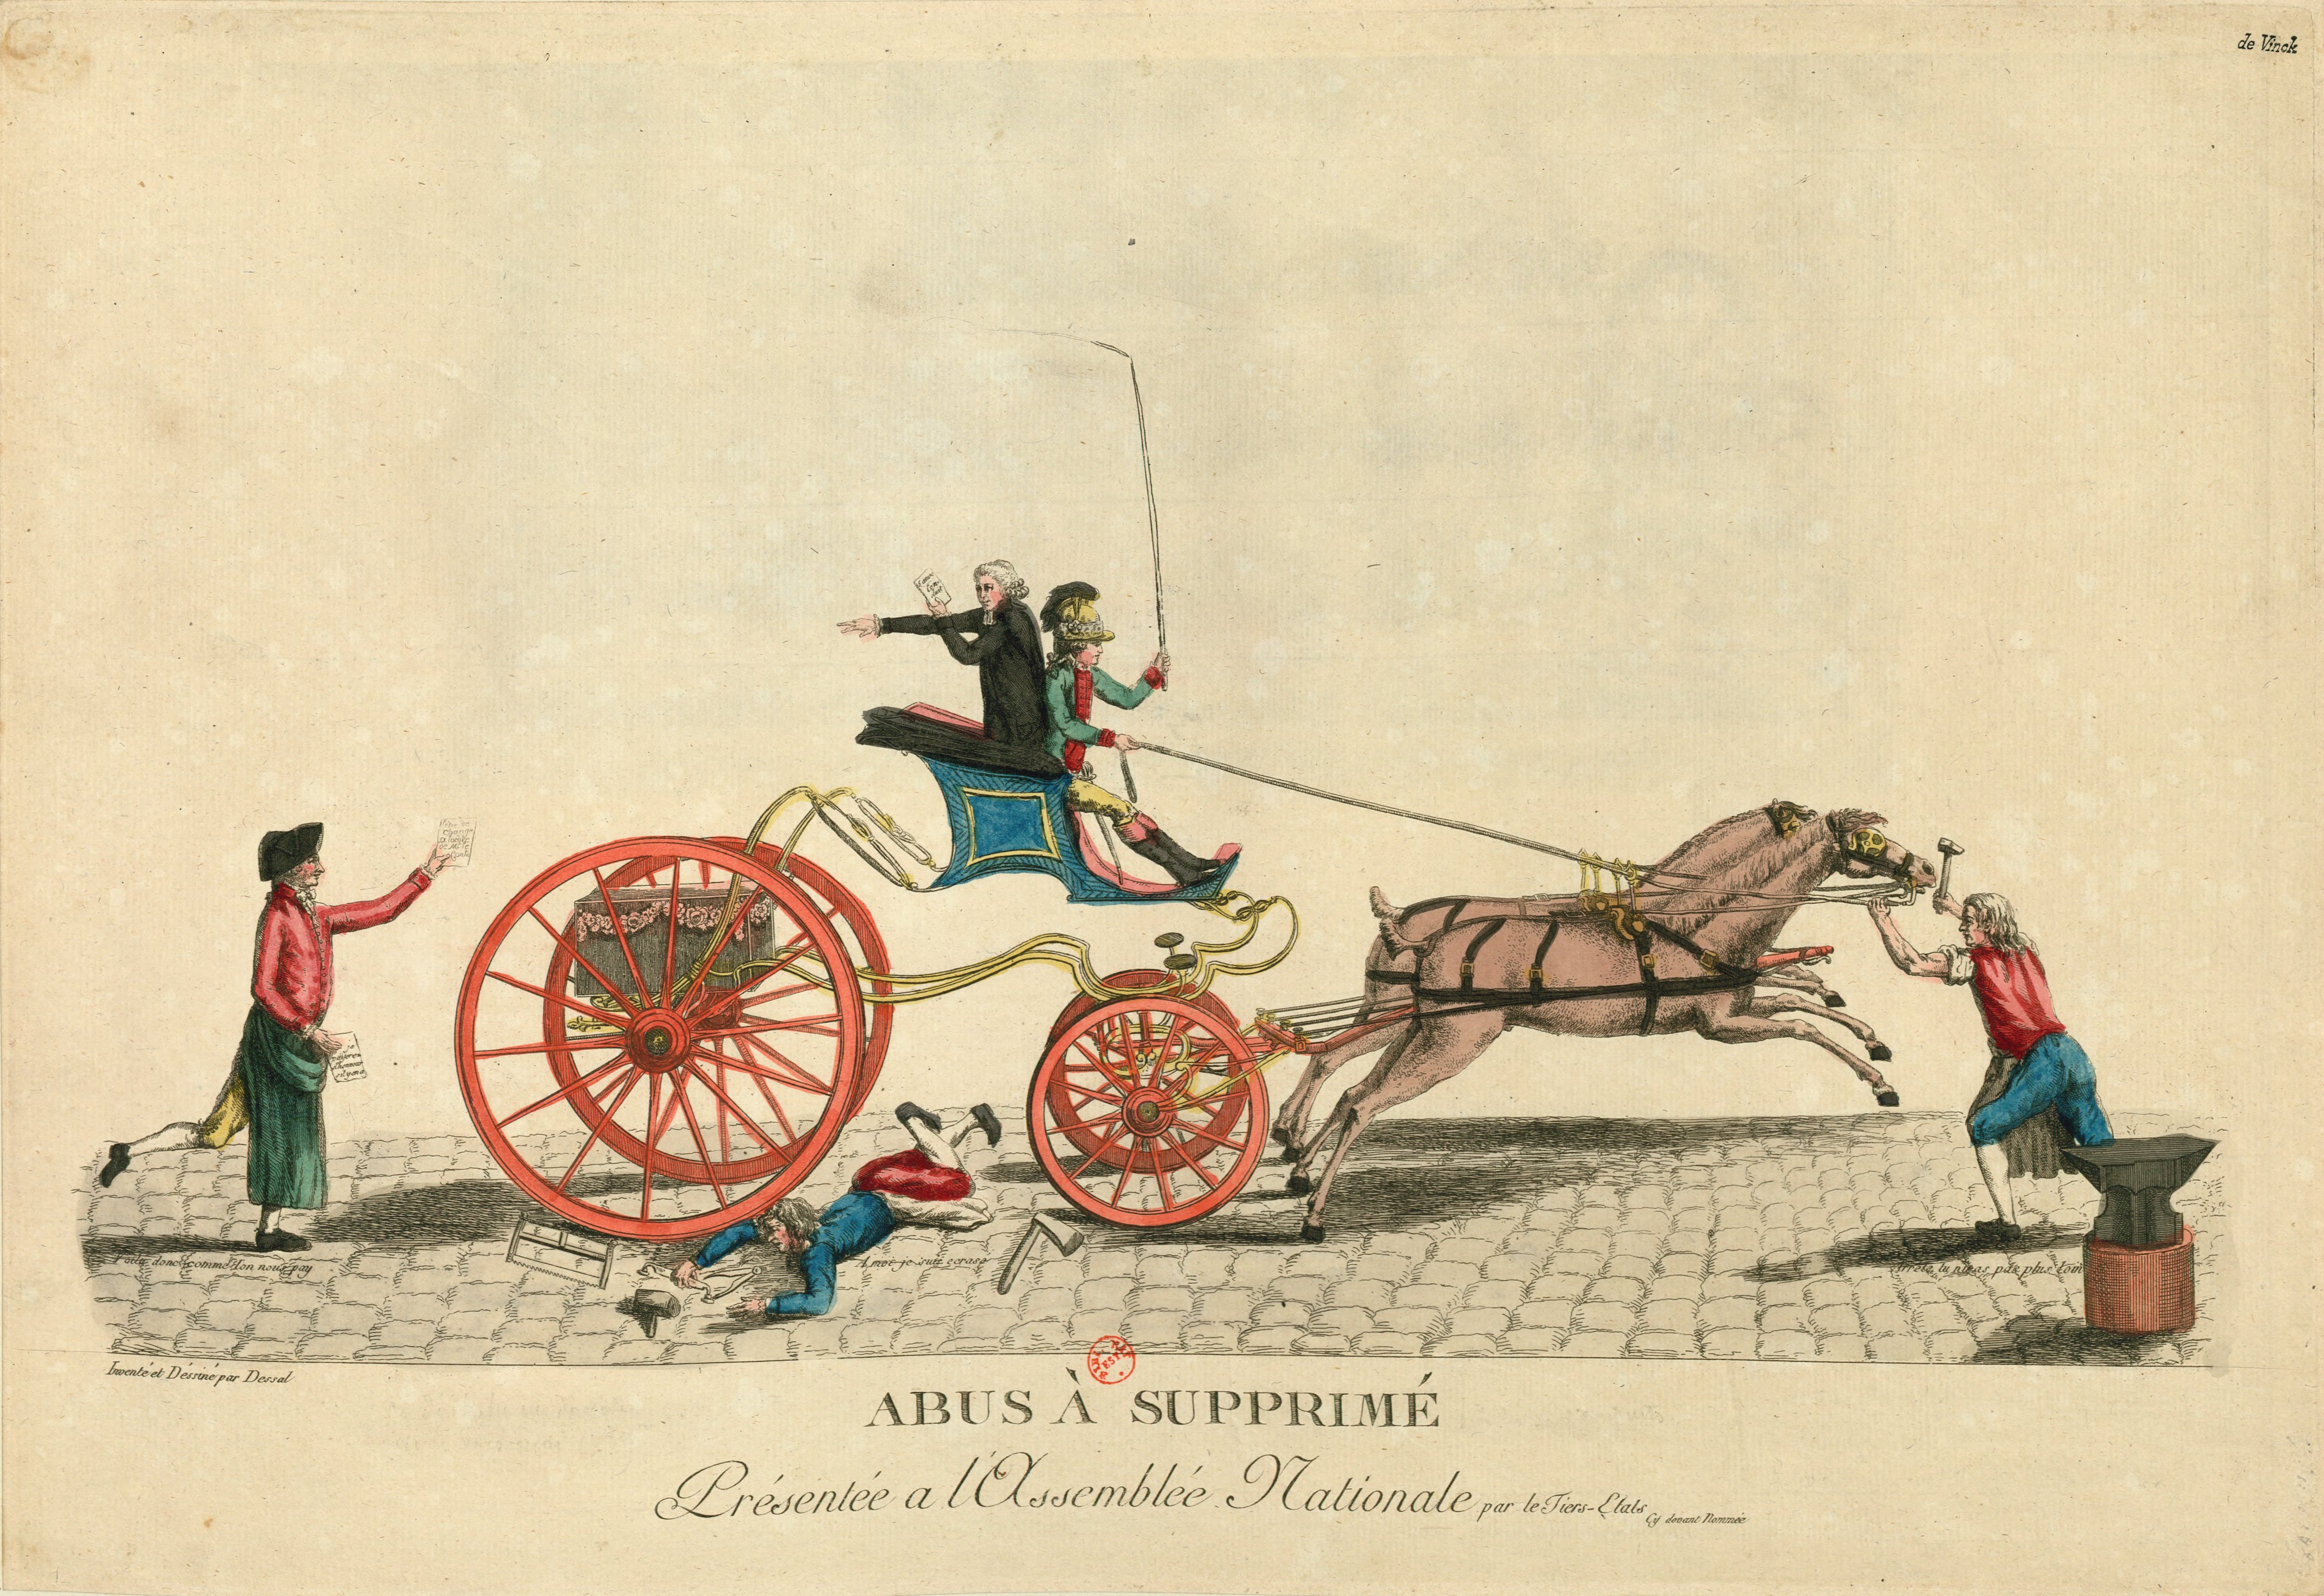 Print of man in carriage running over servants